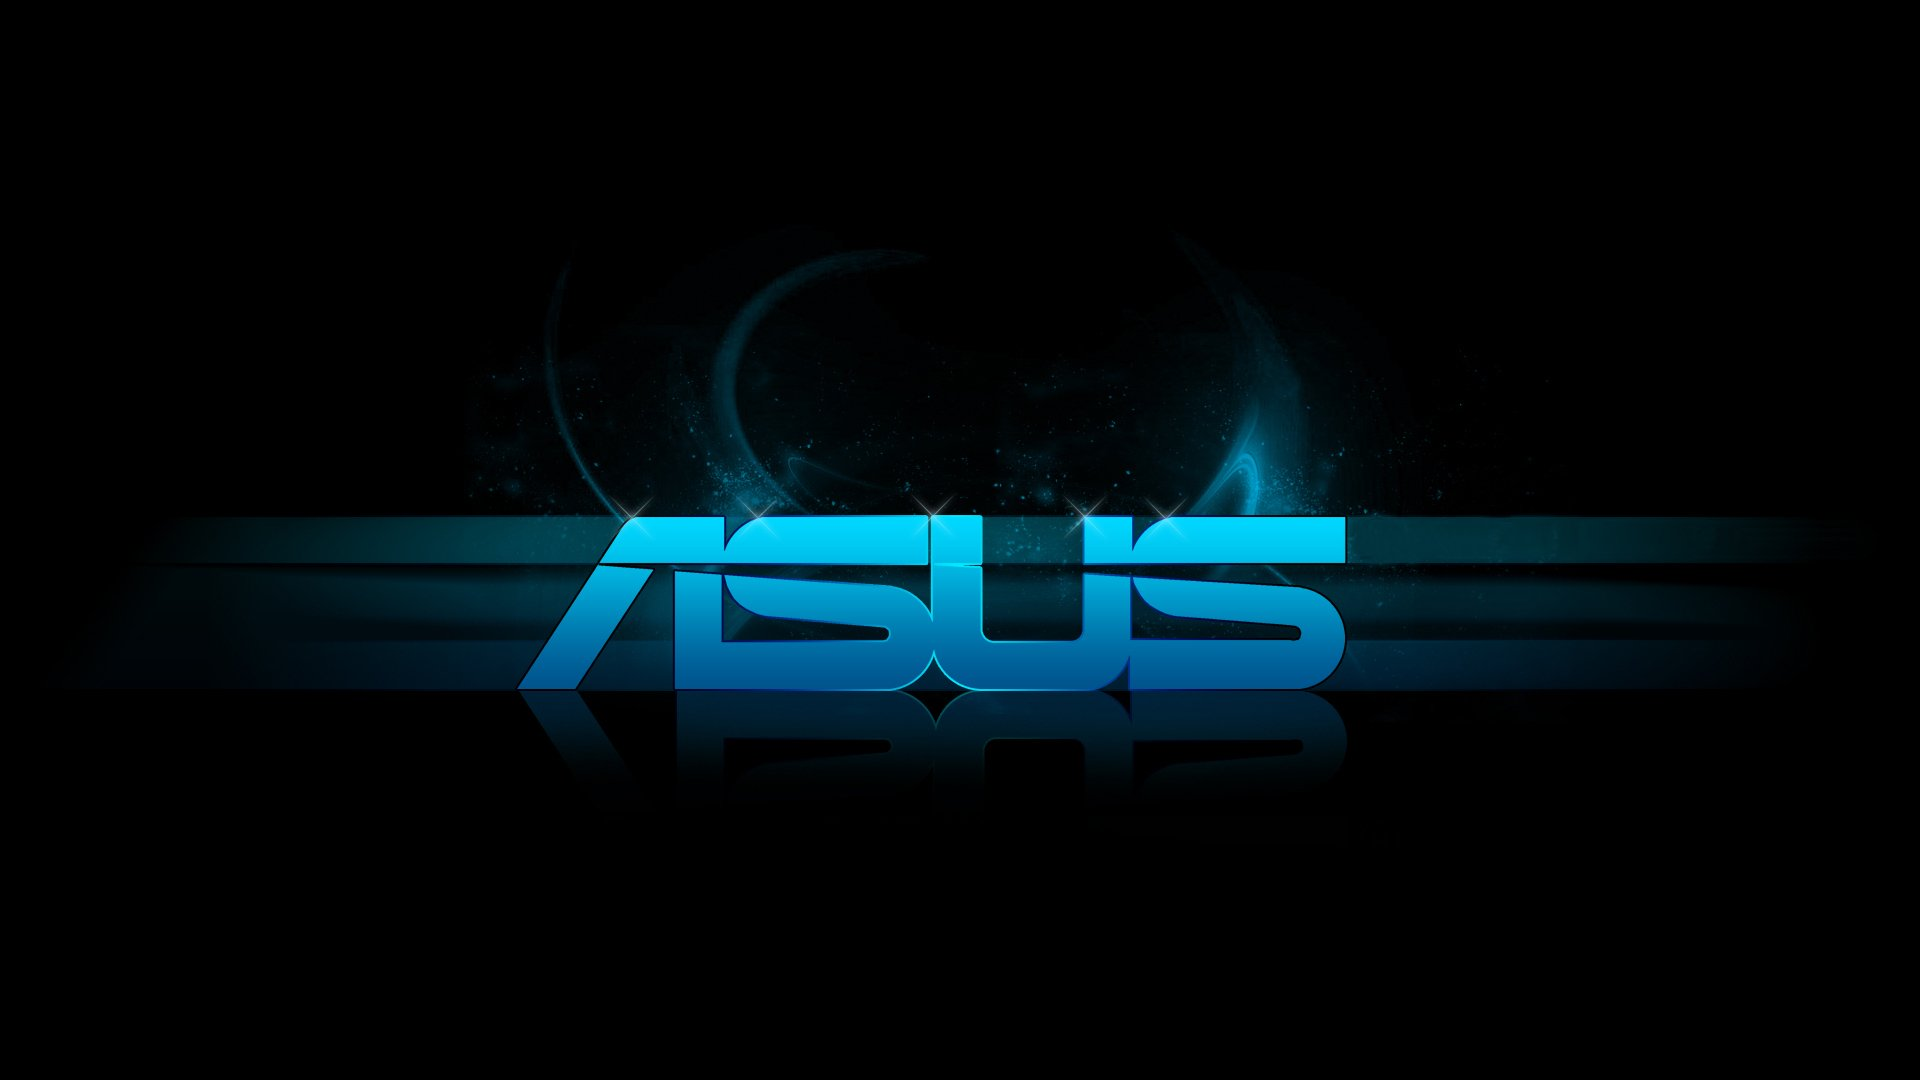 166 Asus HD Wallpapers